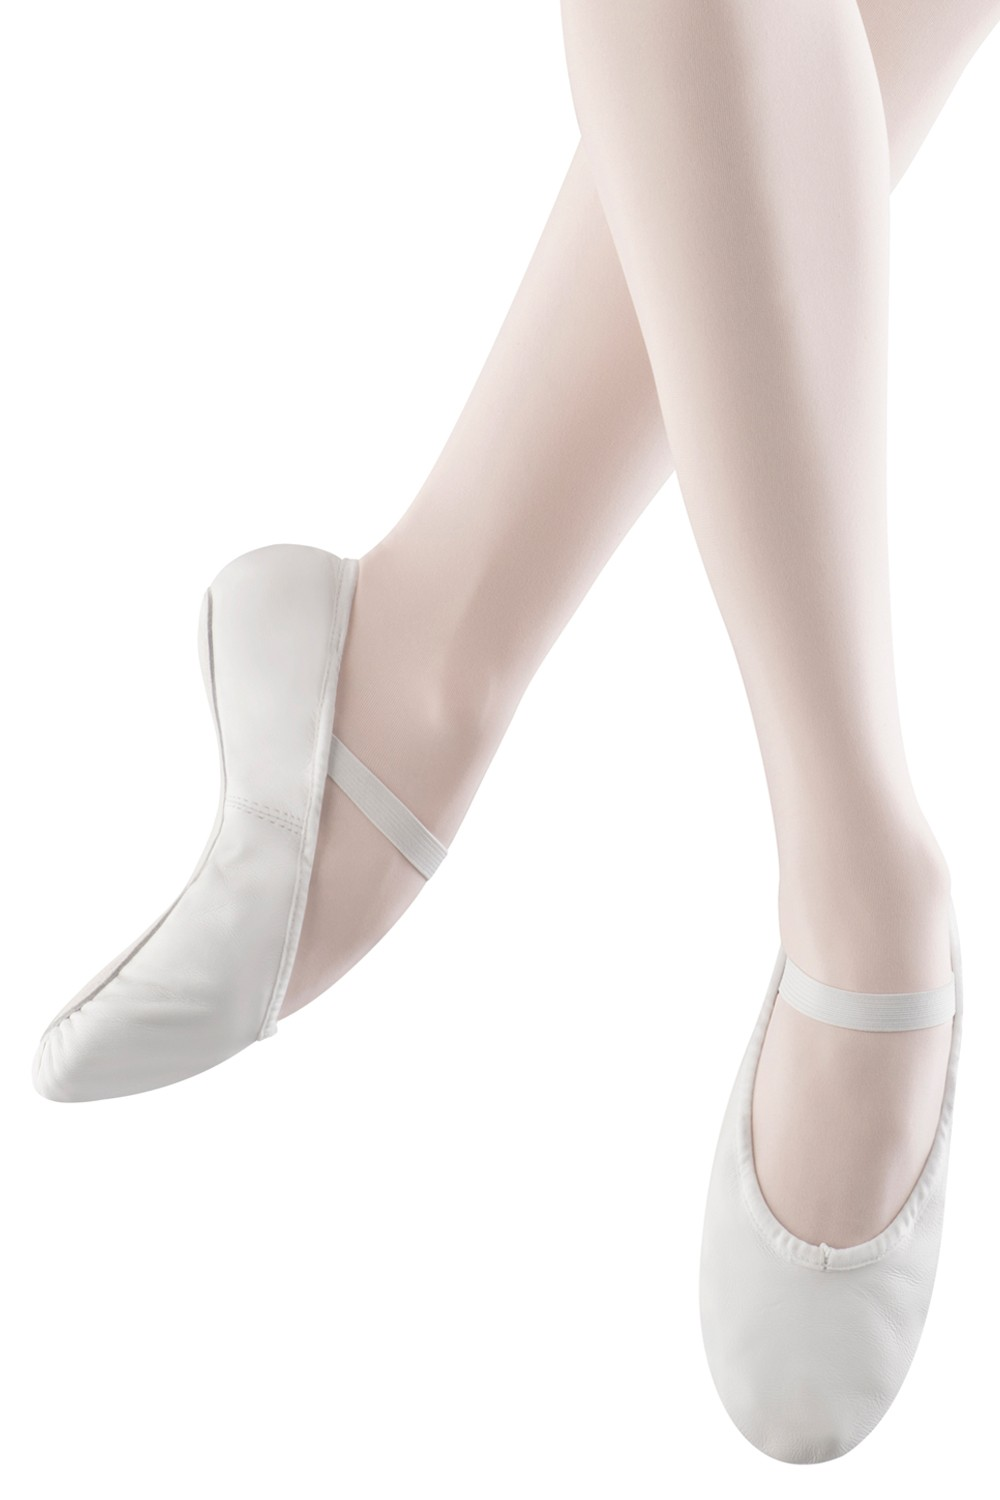 Arise - Niñas Girl's Ballet Shoes